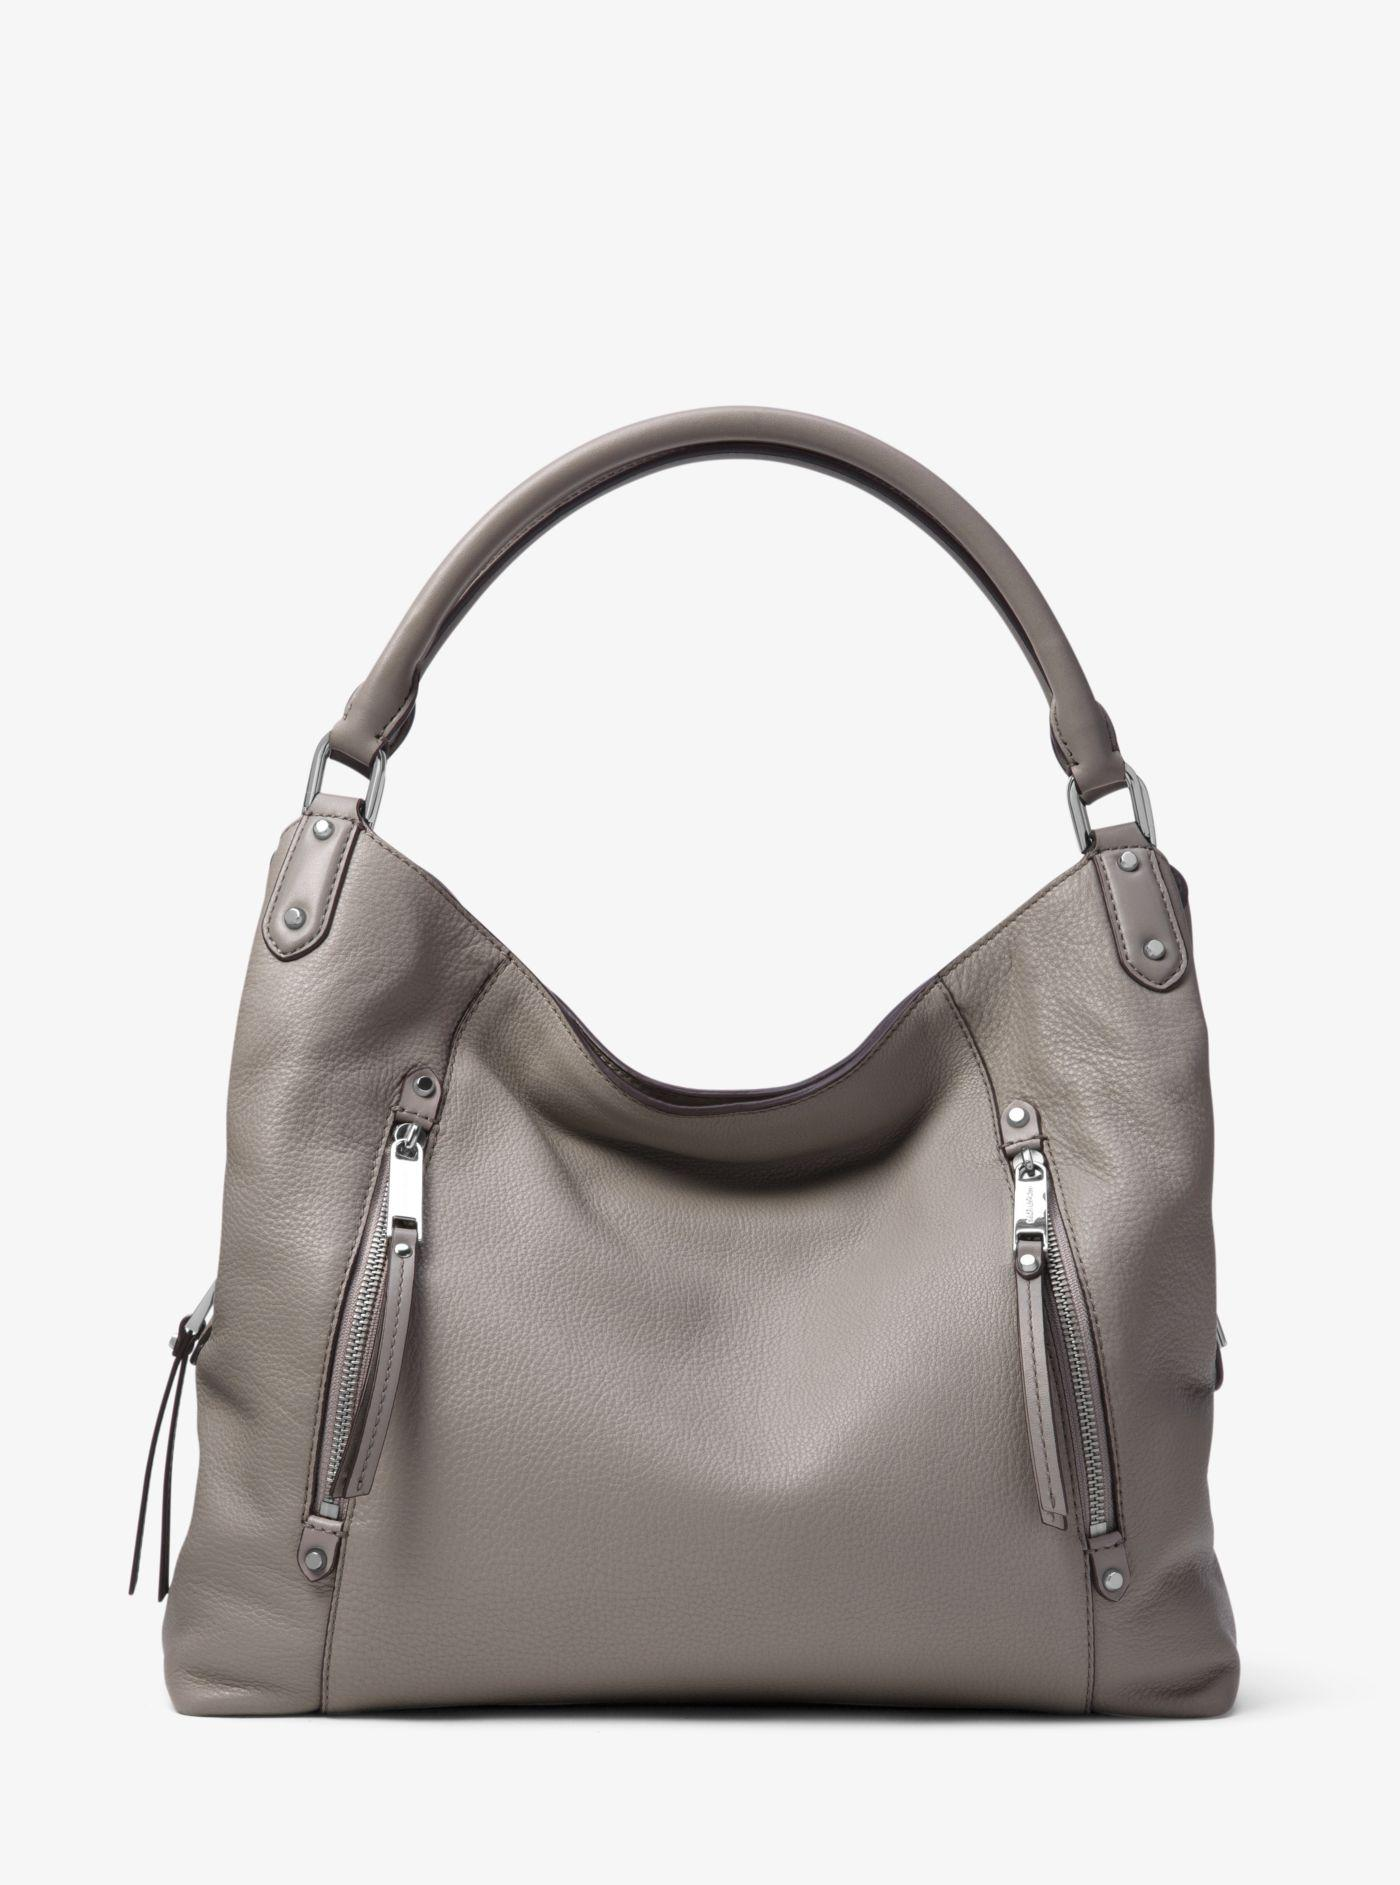 0e535c2a631dc9 Michael Kors Evie Large Leather Shoulder Bag in Gray - Lyst